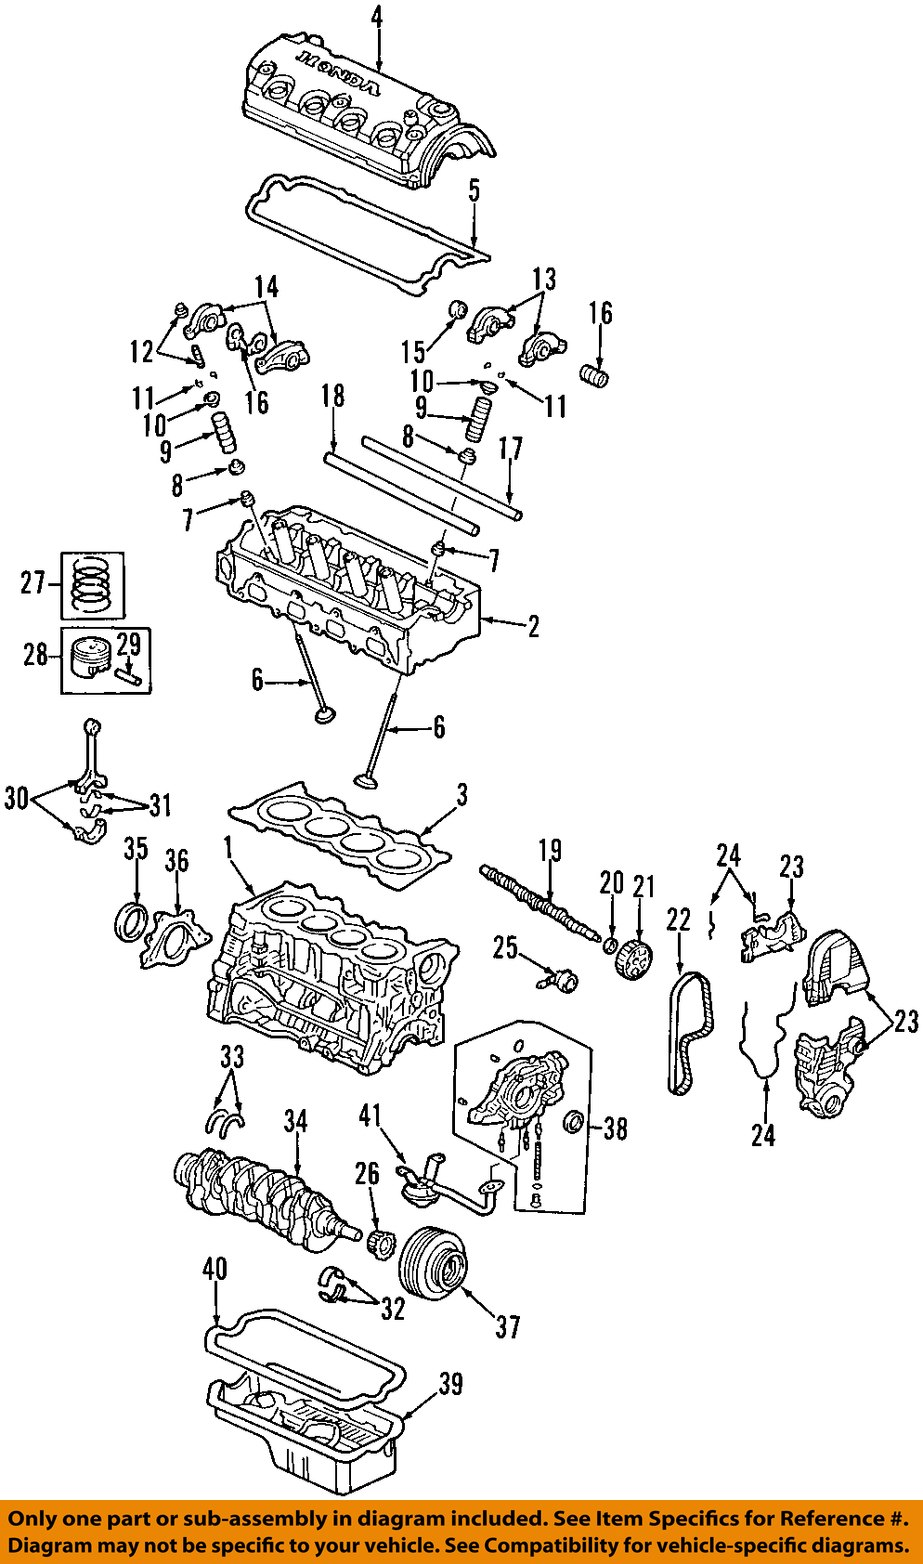 medium resolution of 1989 honda civic engine diagram wiring diagram used 1989 honda civic engine diagram 1989 honda civic engine diagram